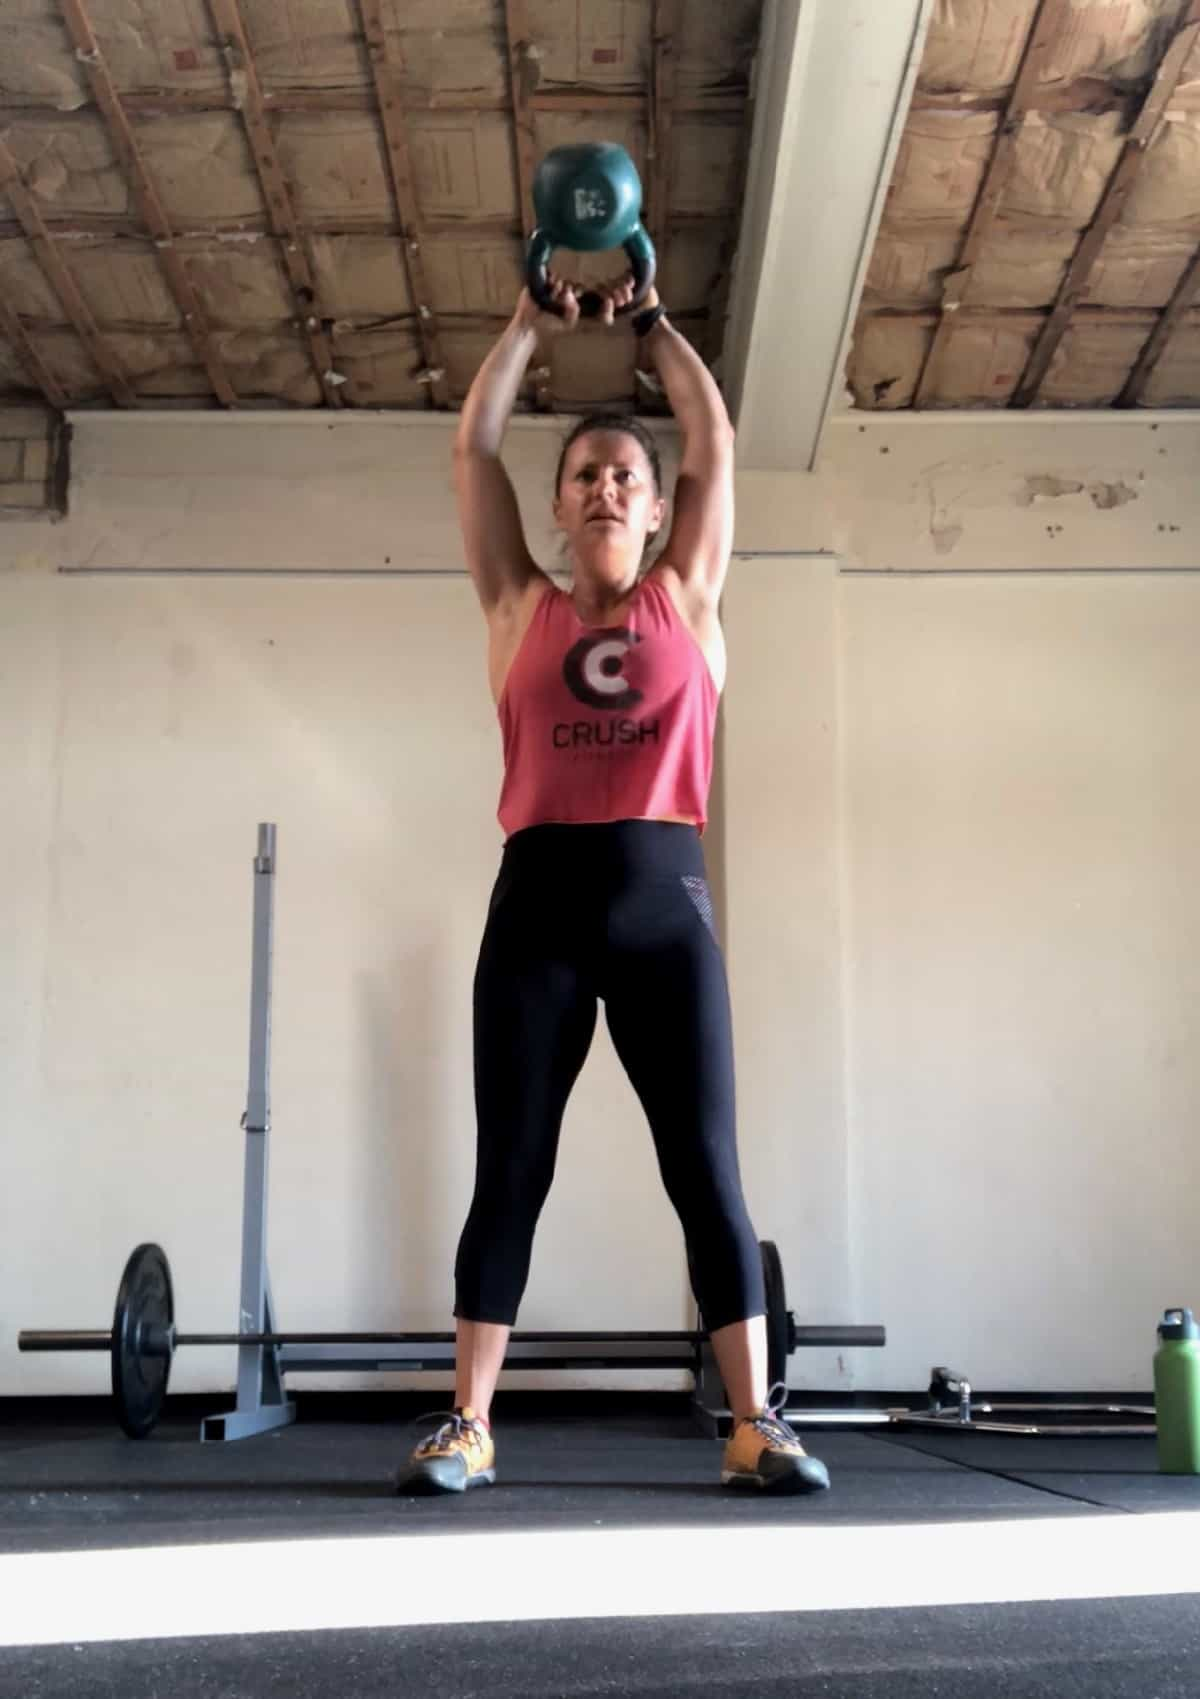 Girl doing a kettlebell swing with the kettlebell over her head